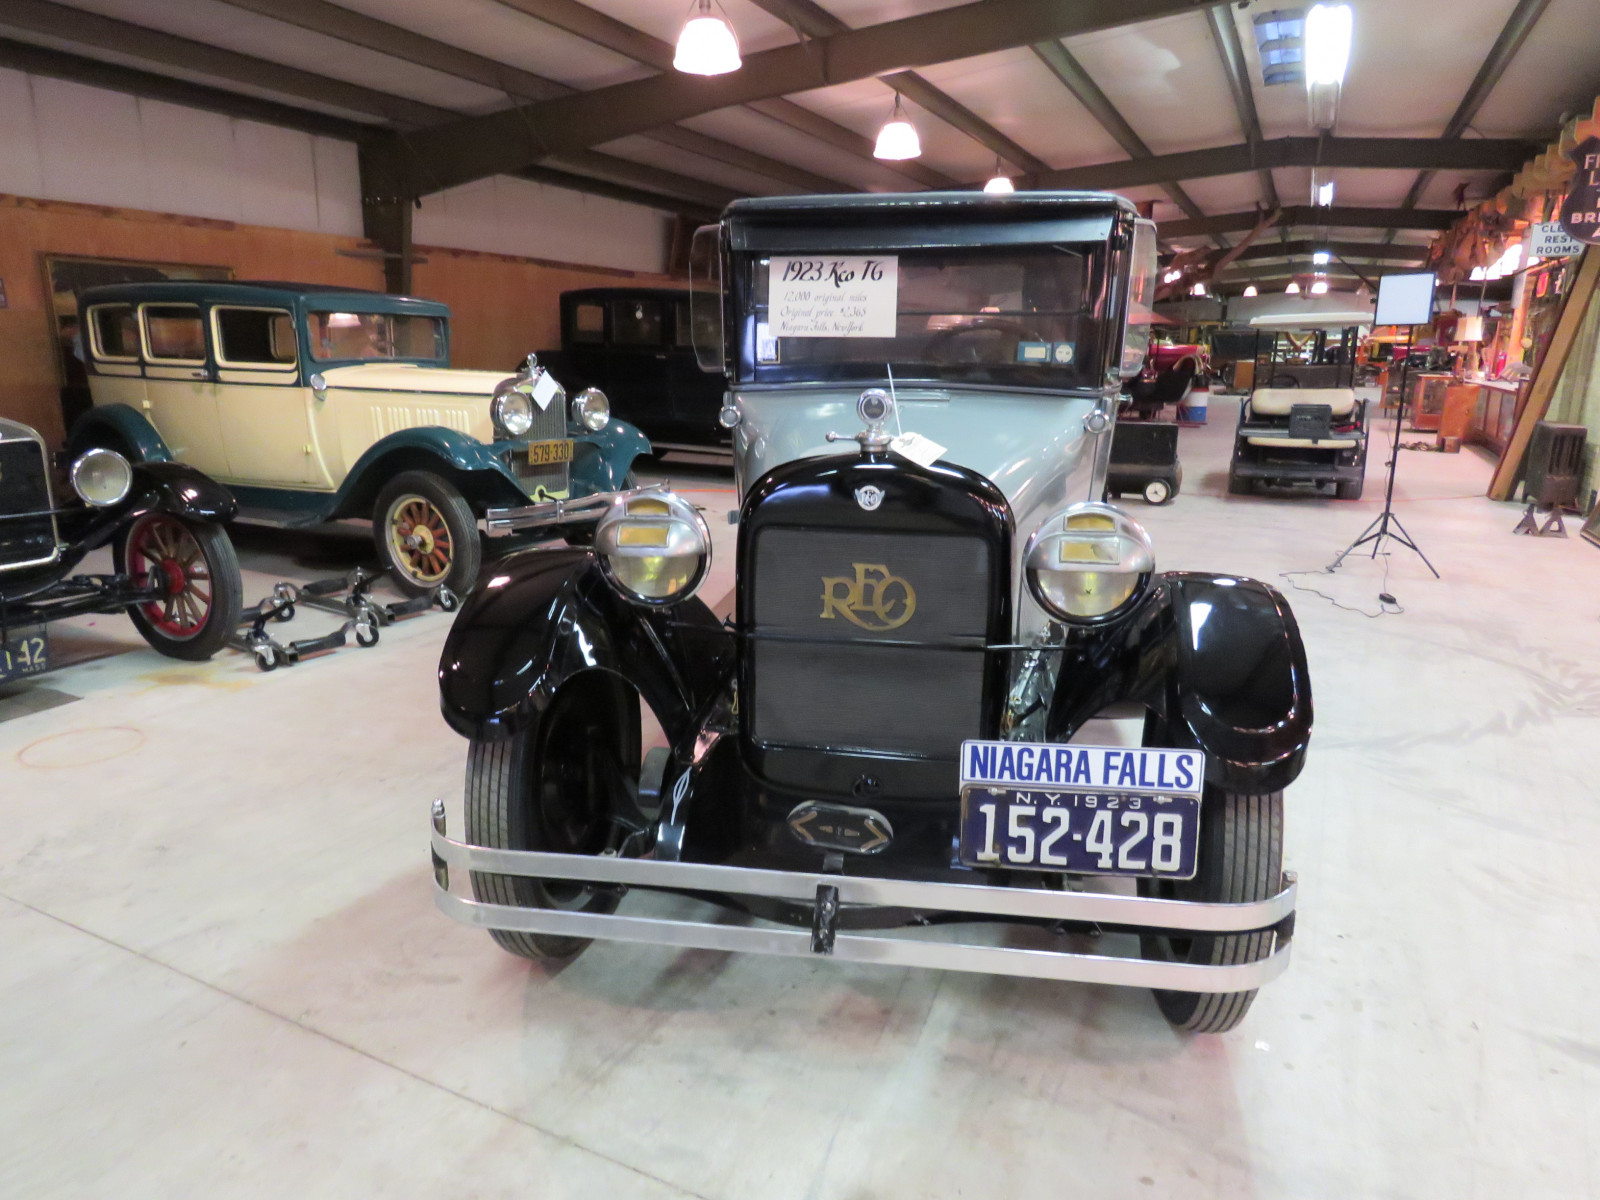 1923 REO Model T6 4dr Sedan - Image 2